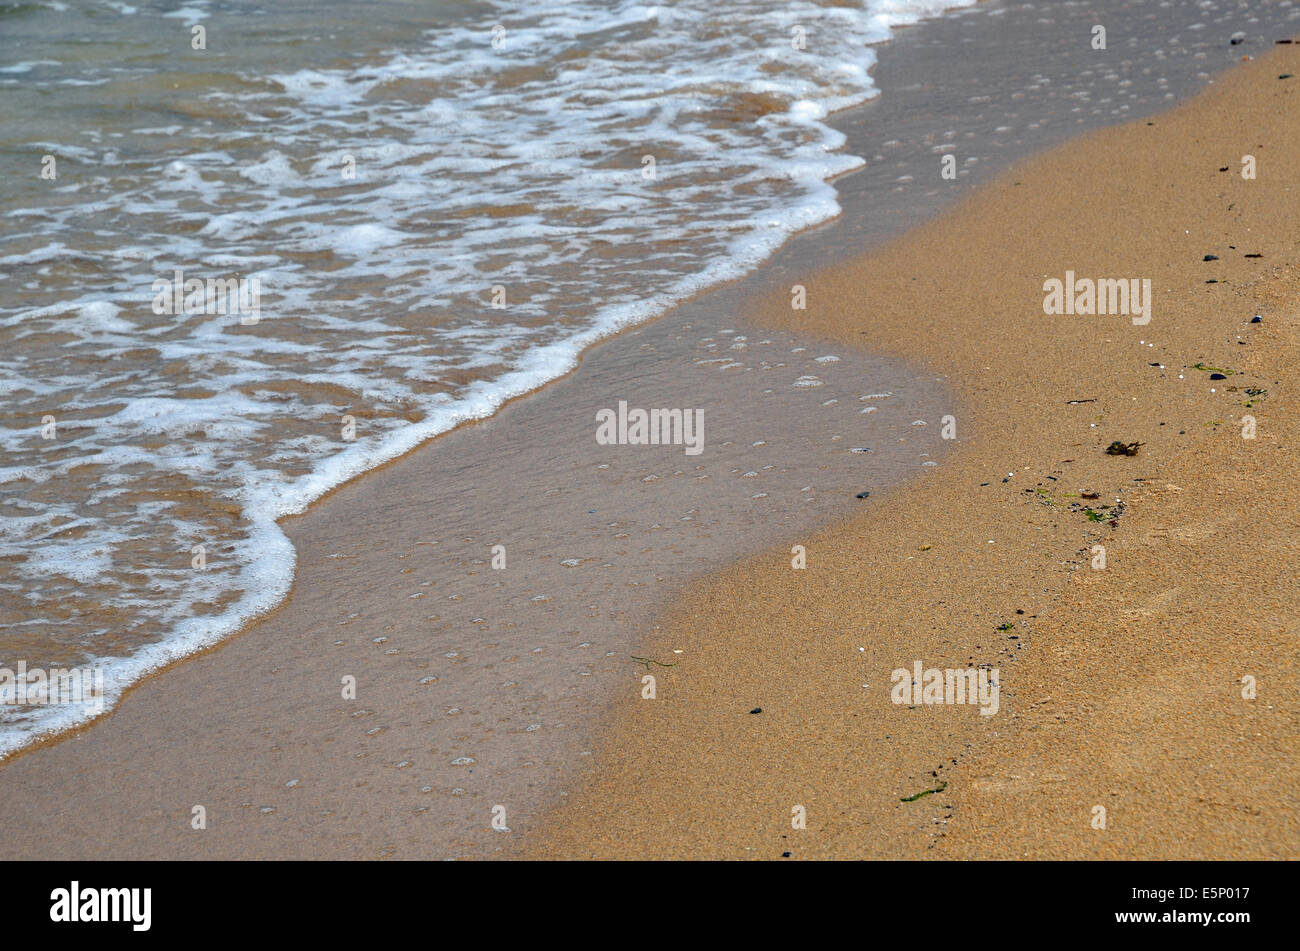 Sea and sand - water lapping onto a sandy beach. - Stock Image